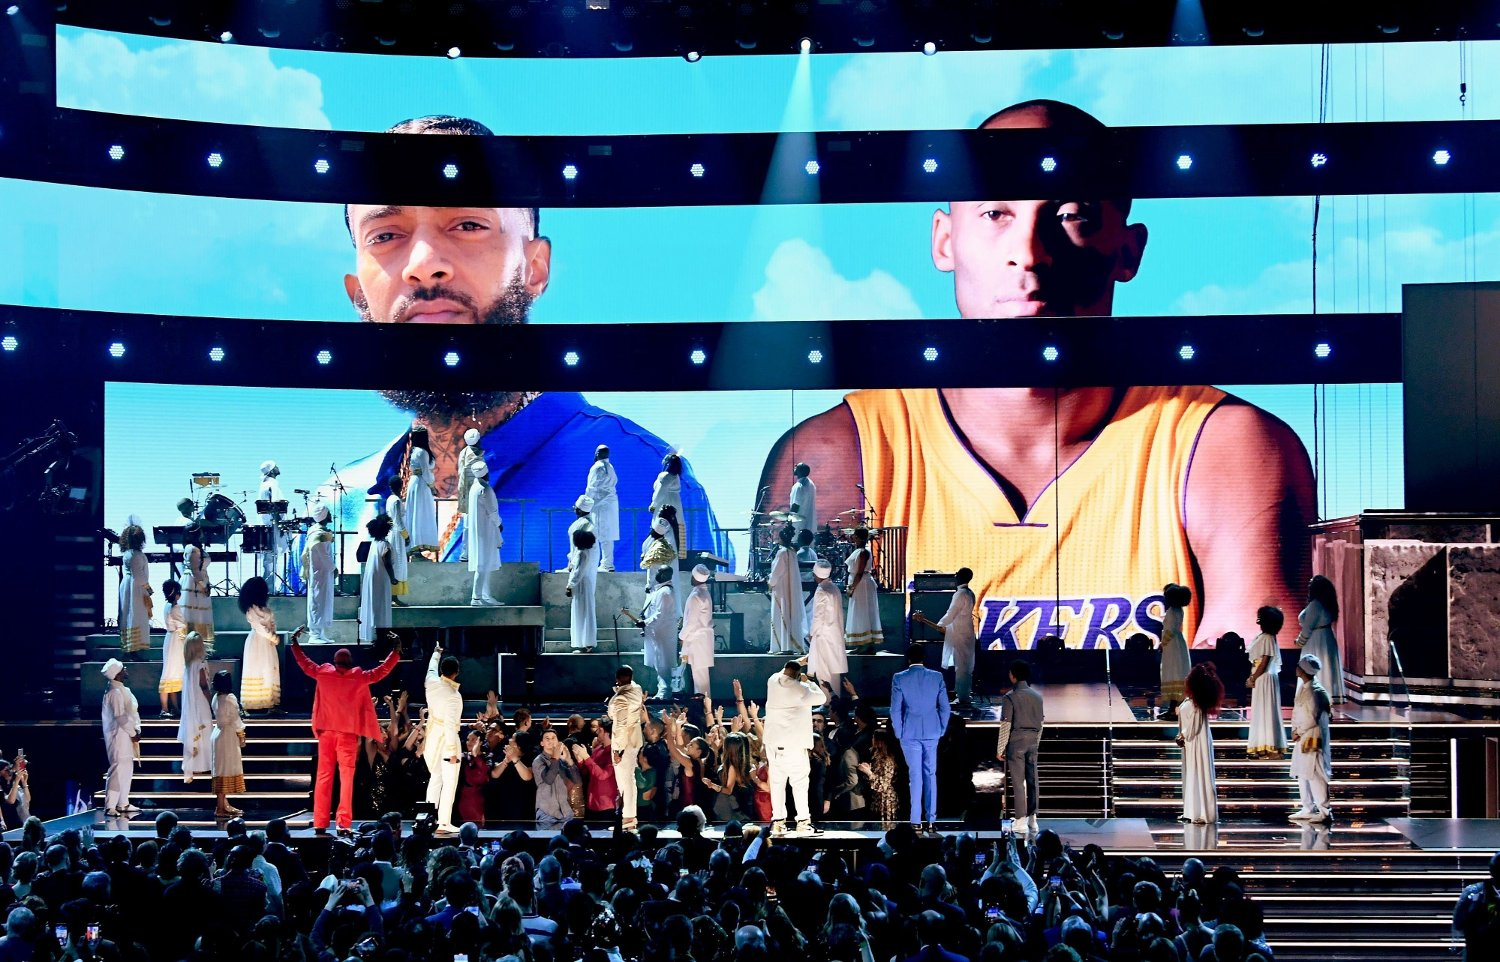 62nd Annual GRAMMY Awards - Show LOS ANGELES, CALIFORNIA - JANUARY 26: Images for the late Nipsey Hussle and Kobe Bryant are projected onto a screen while YG, John Legend, Kirk Franklin, DJ Khaled, Meek Mill, and Roddy Ricch perform onstage during the 62nd Annual GRAMMY Awards at STAPLES Center on January 26, 2020 in Los Angeles, California. Kevin Winter/Getty Images for The Recording Academy /AFPMeek Mill == FOR NEWSPAPERS, INTERNET, TELCOS & TELEVISION USE ONLY ==